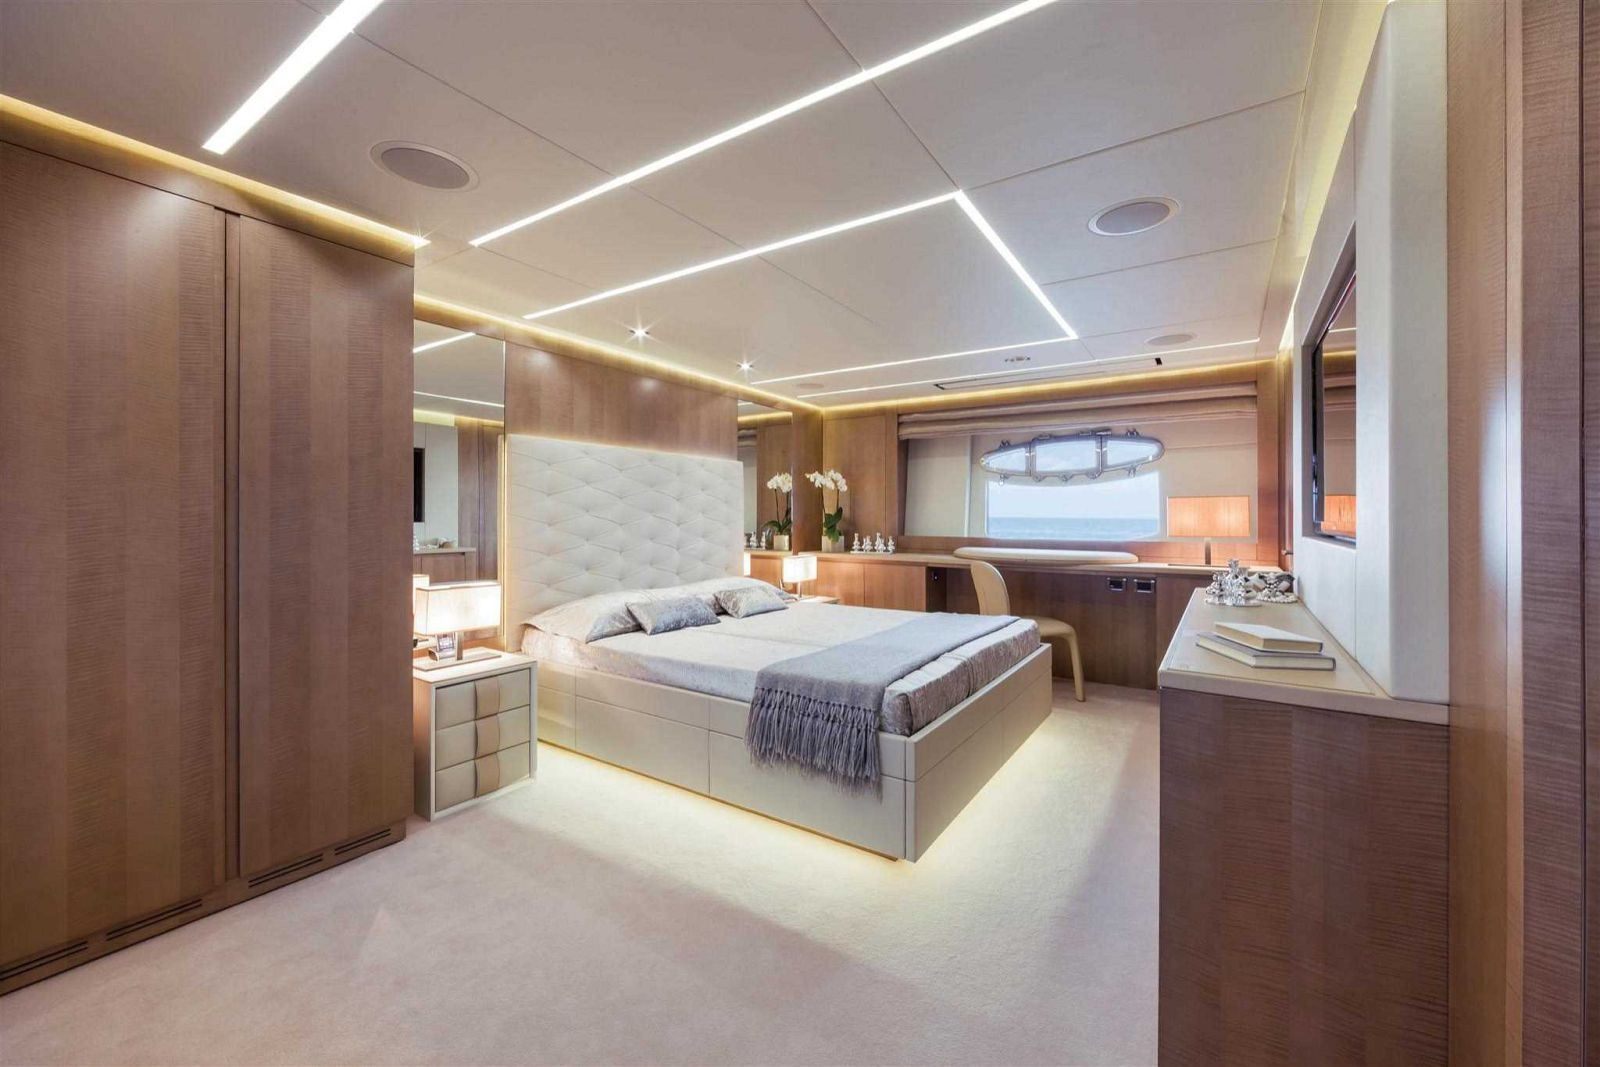 Pershing 108 Cabin - New Luxury Yacht for Sale >